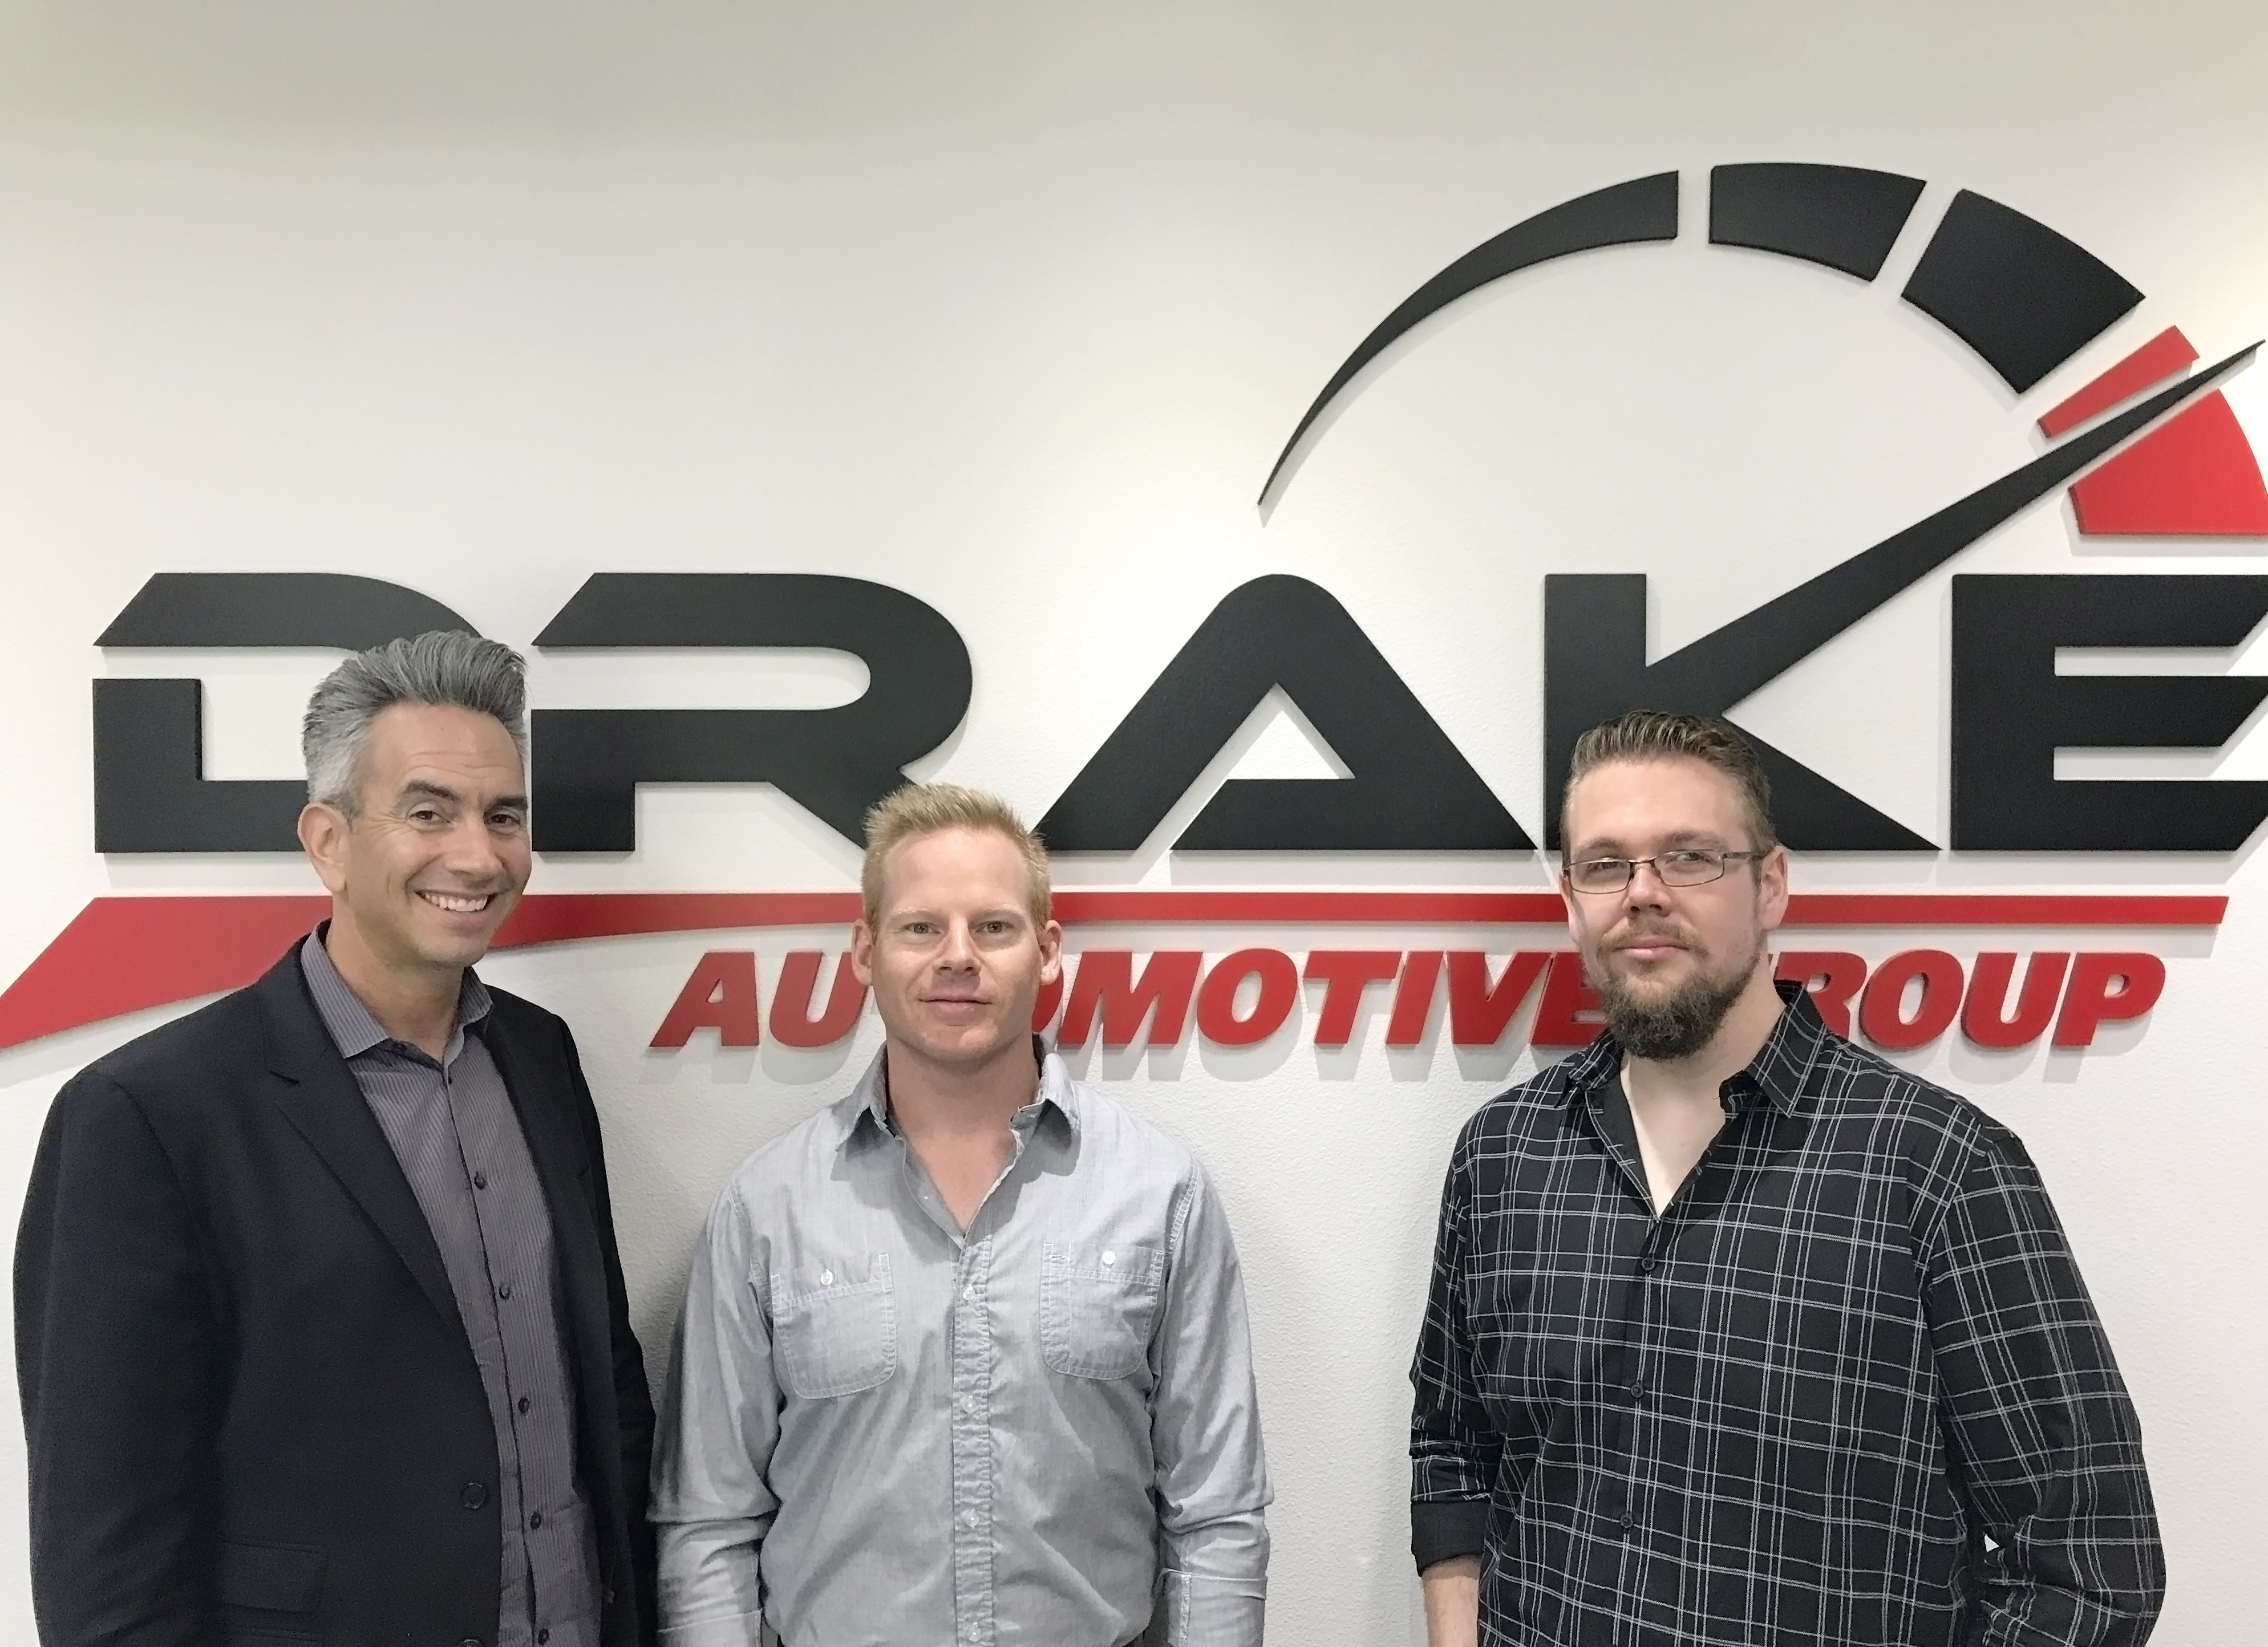 Drake Automotive Group Adds More Muscle with Three Strategic Hires. From left: Gary Schechner, Keith Criswell, Kris Horton (Photo: Business Wire)